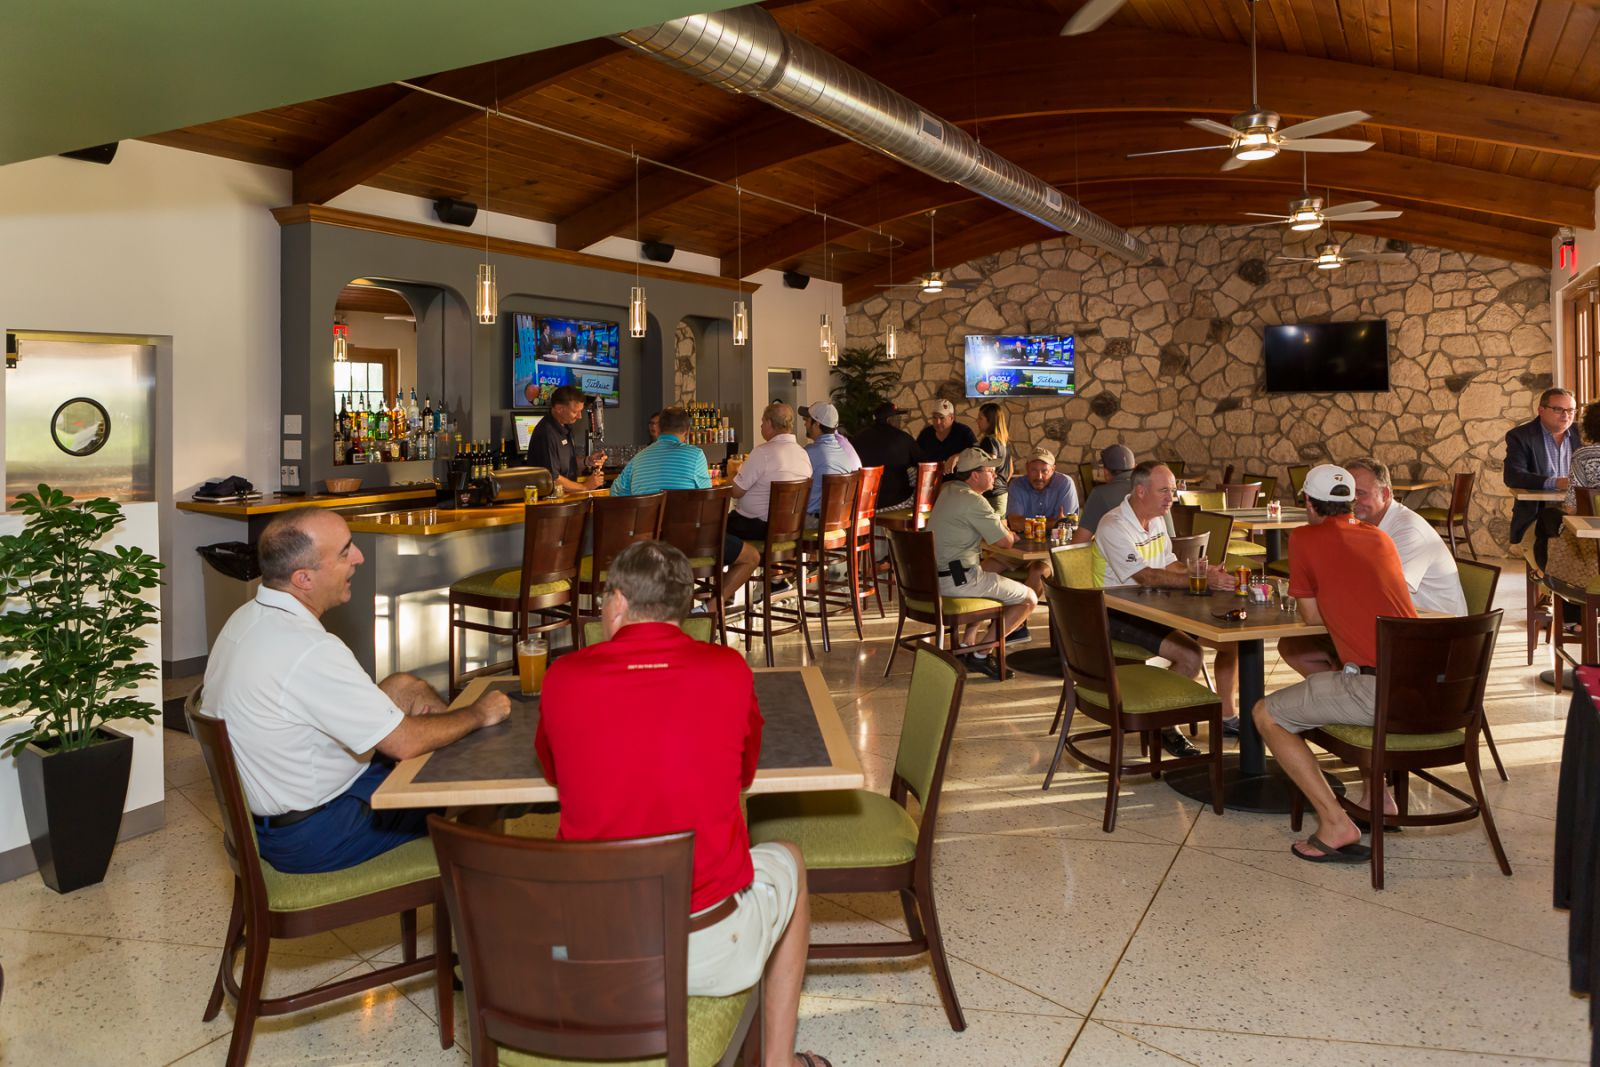 Swing by the Grill60 to pick up a drink or meal berfore, during or after your round at San Marcos Golf Resort in Chandler, Arizona.